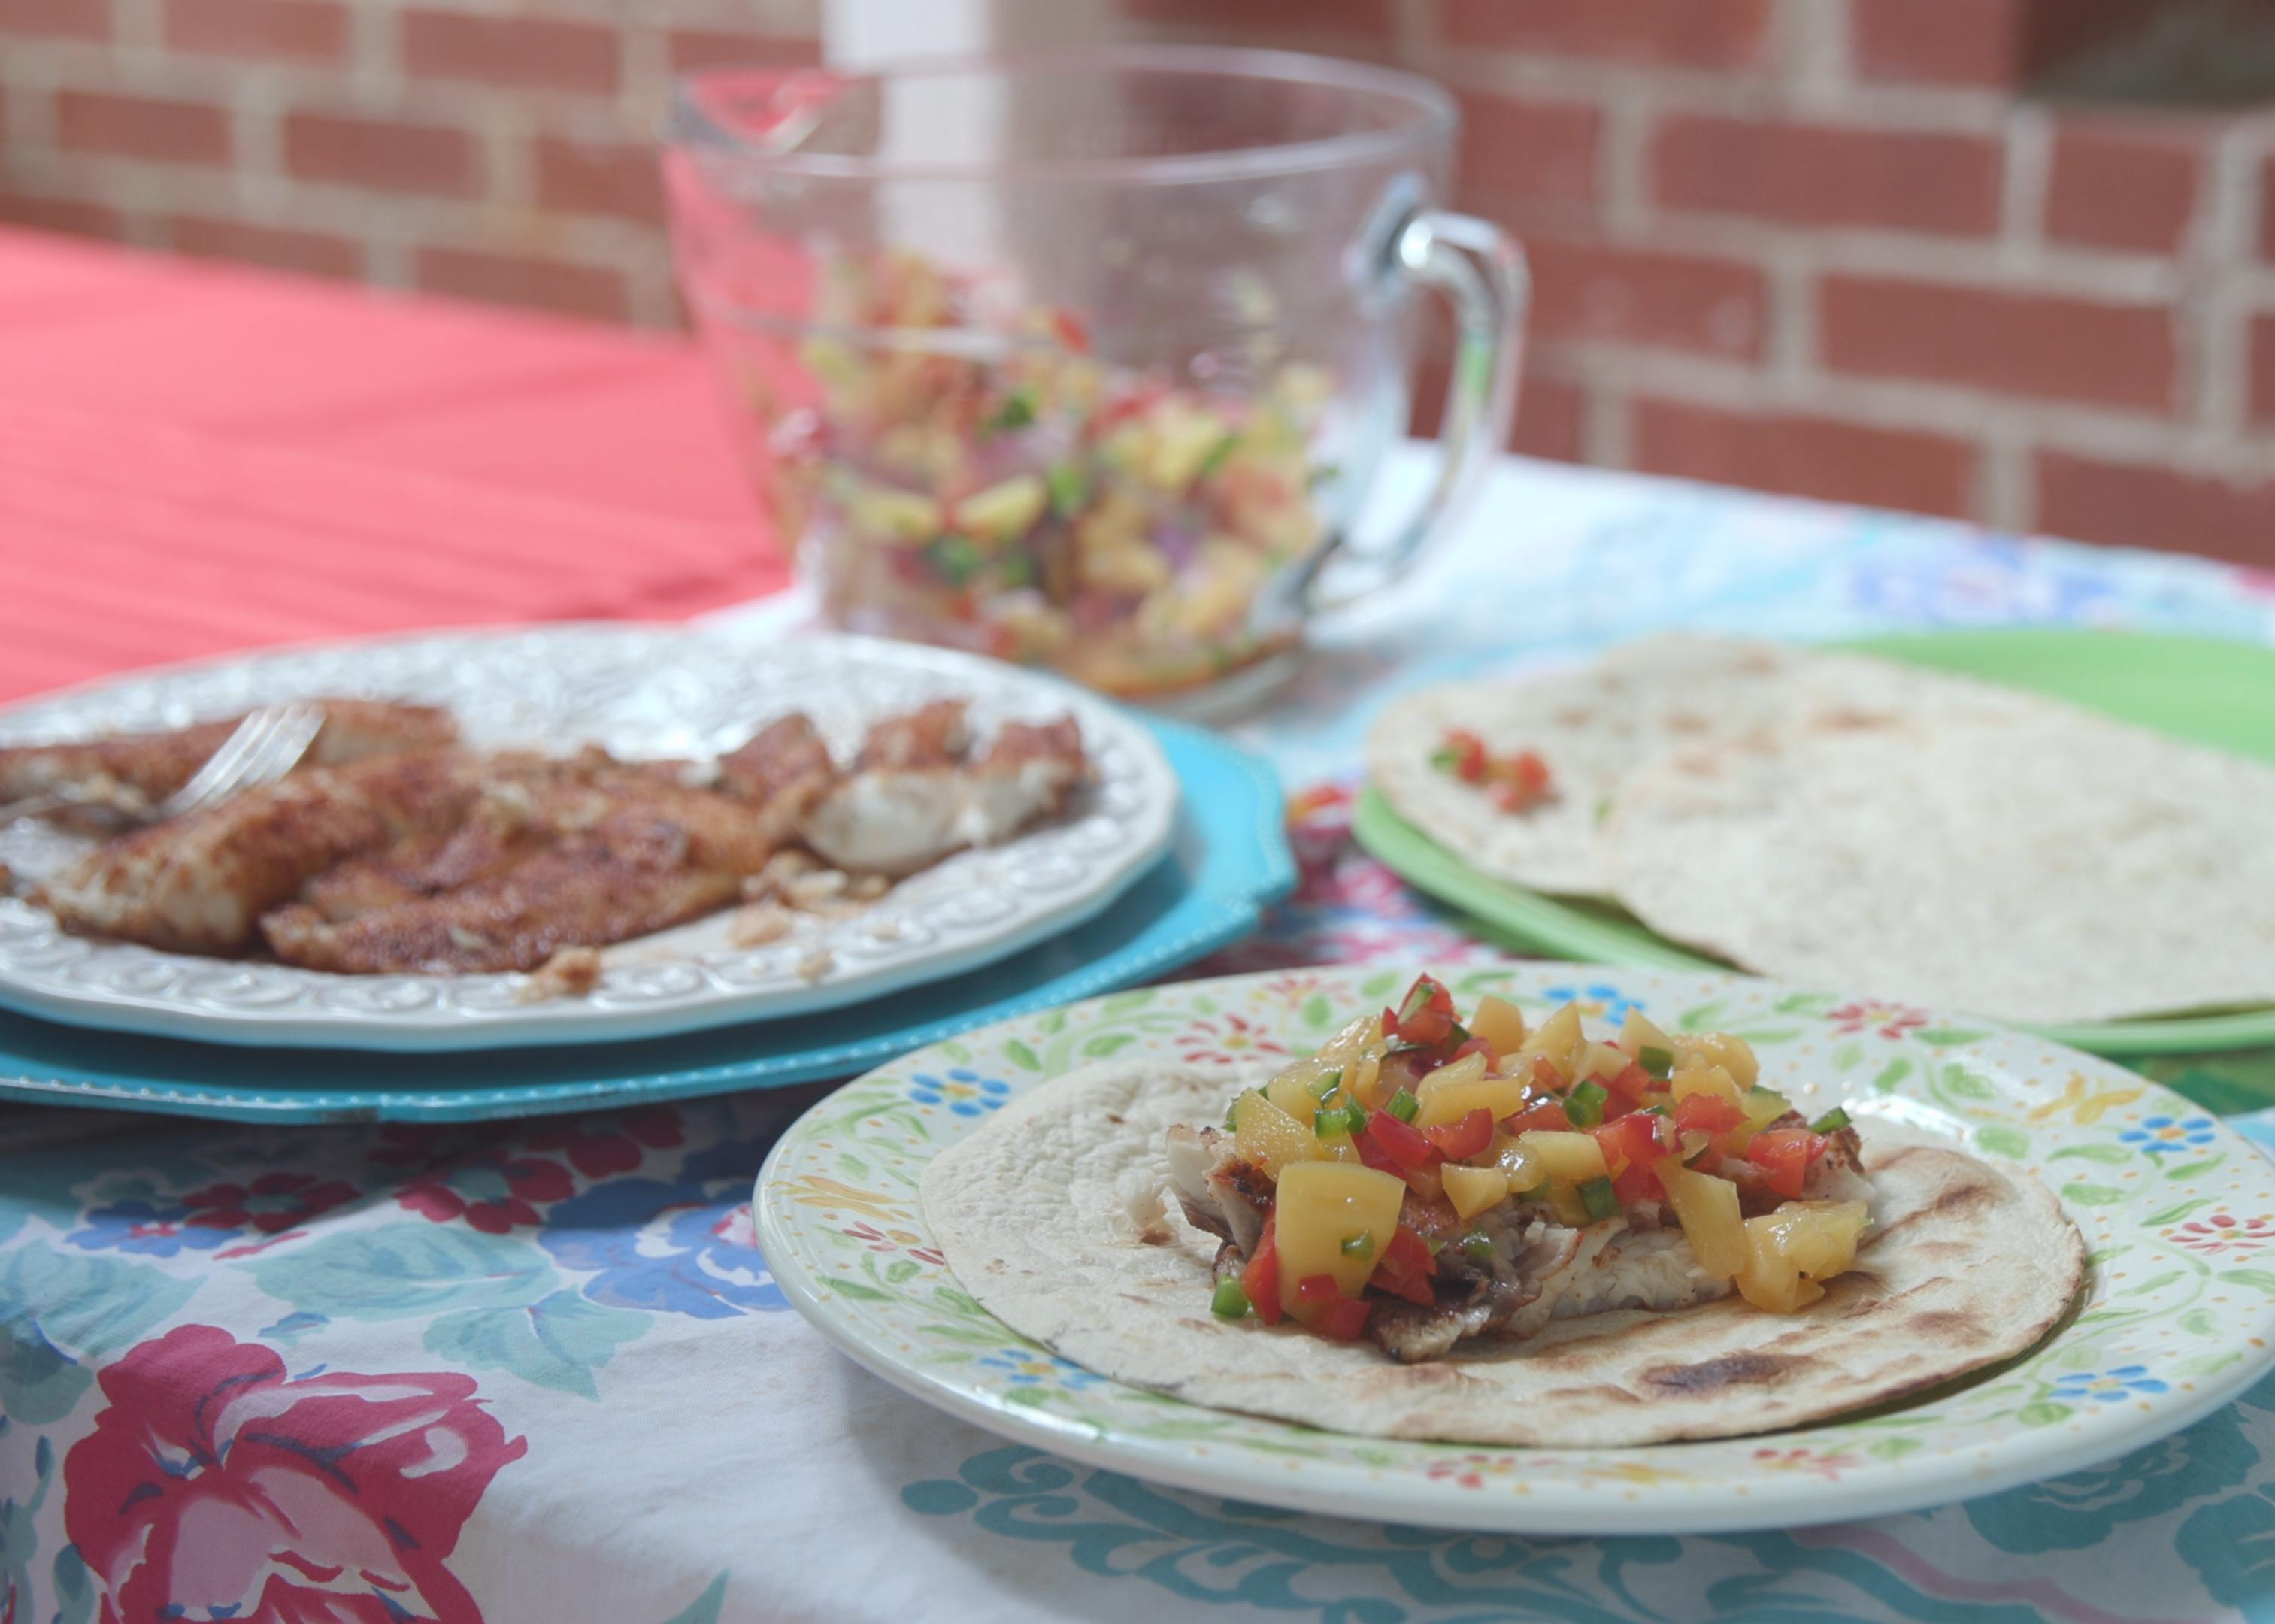 Three plates with tortillas, fish, and a completed grilled fish taco with peach salsa on a picnic table.